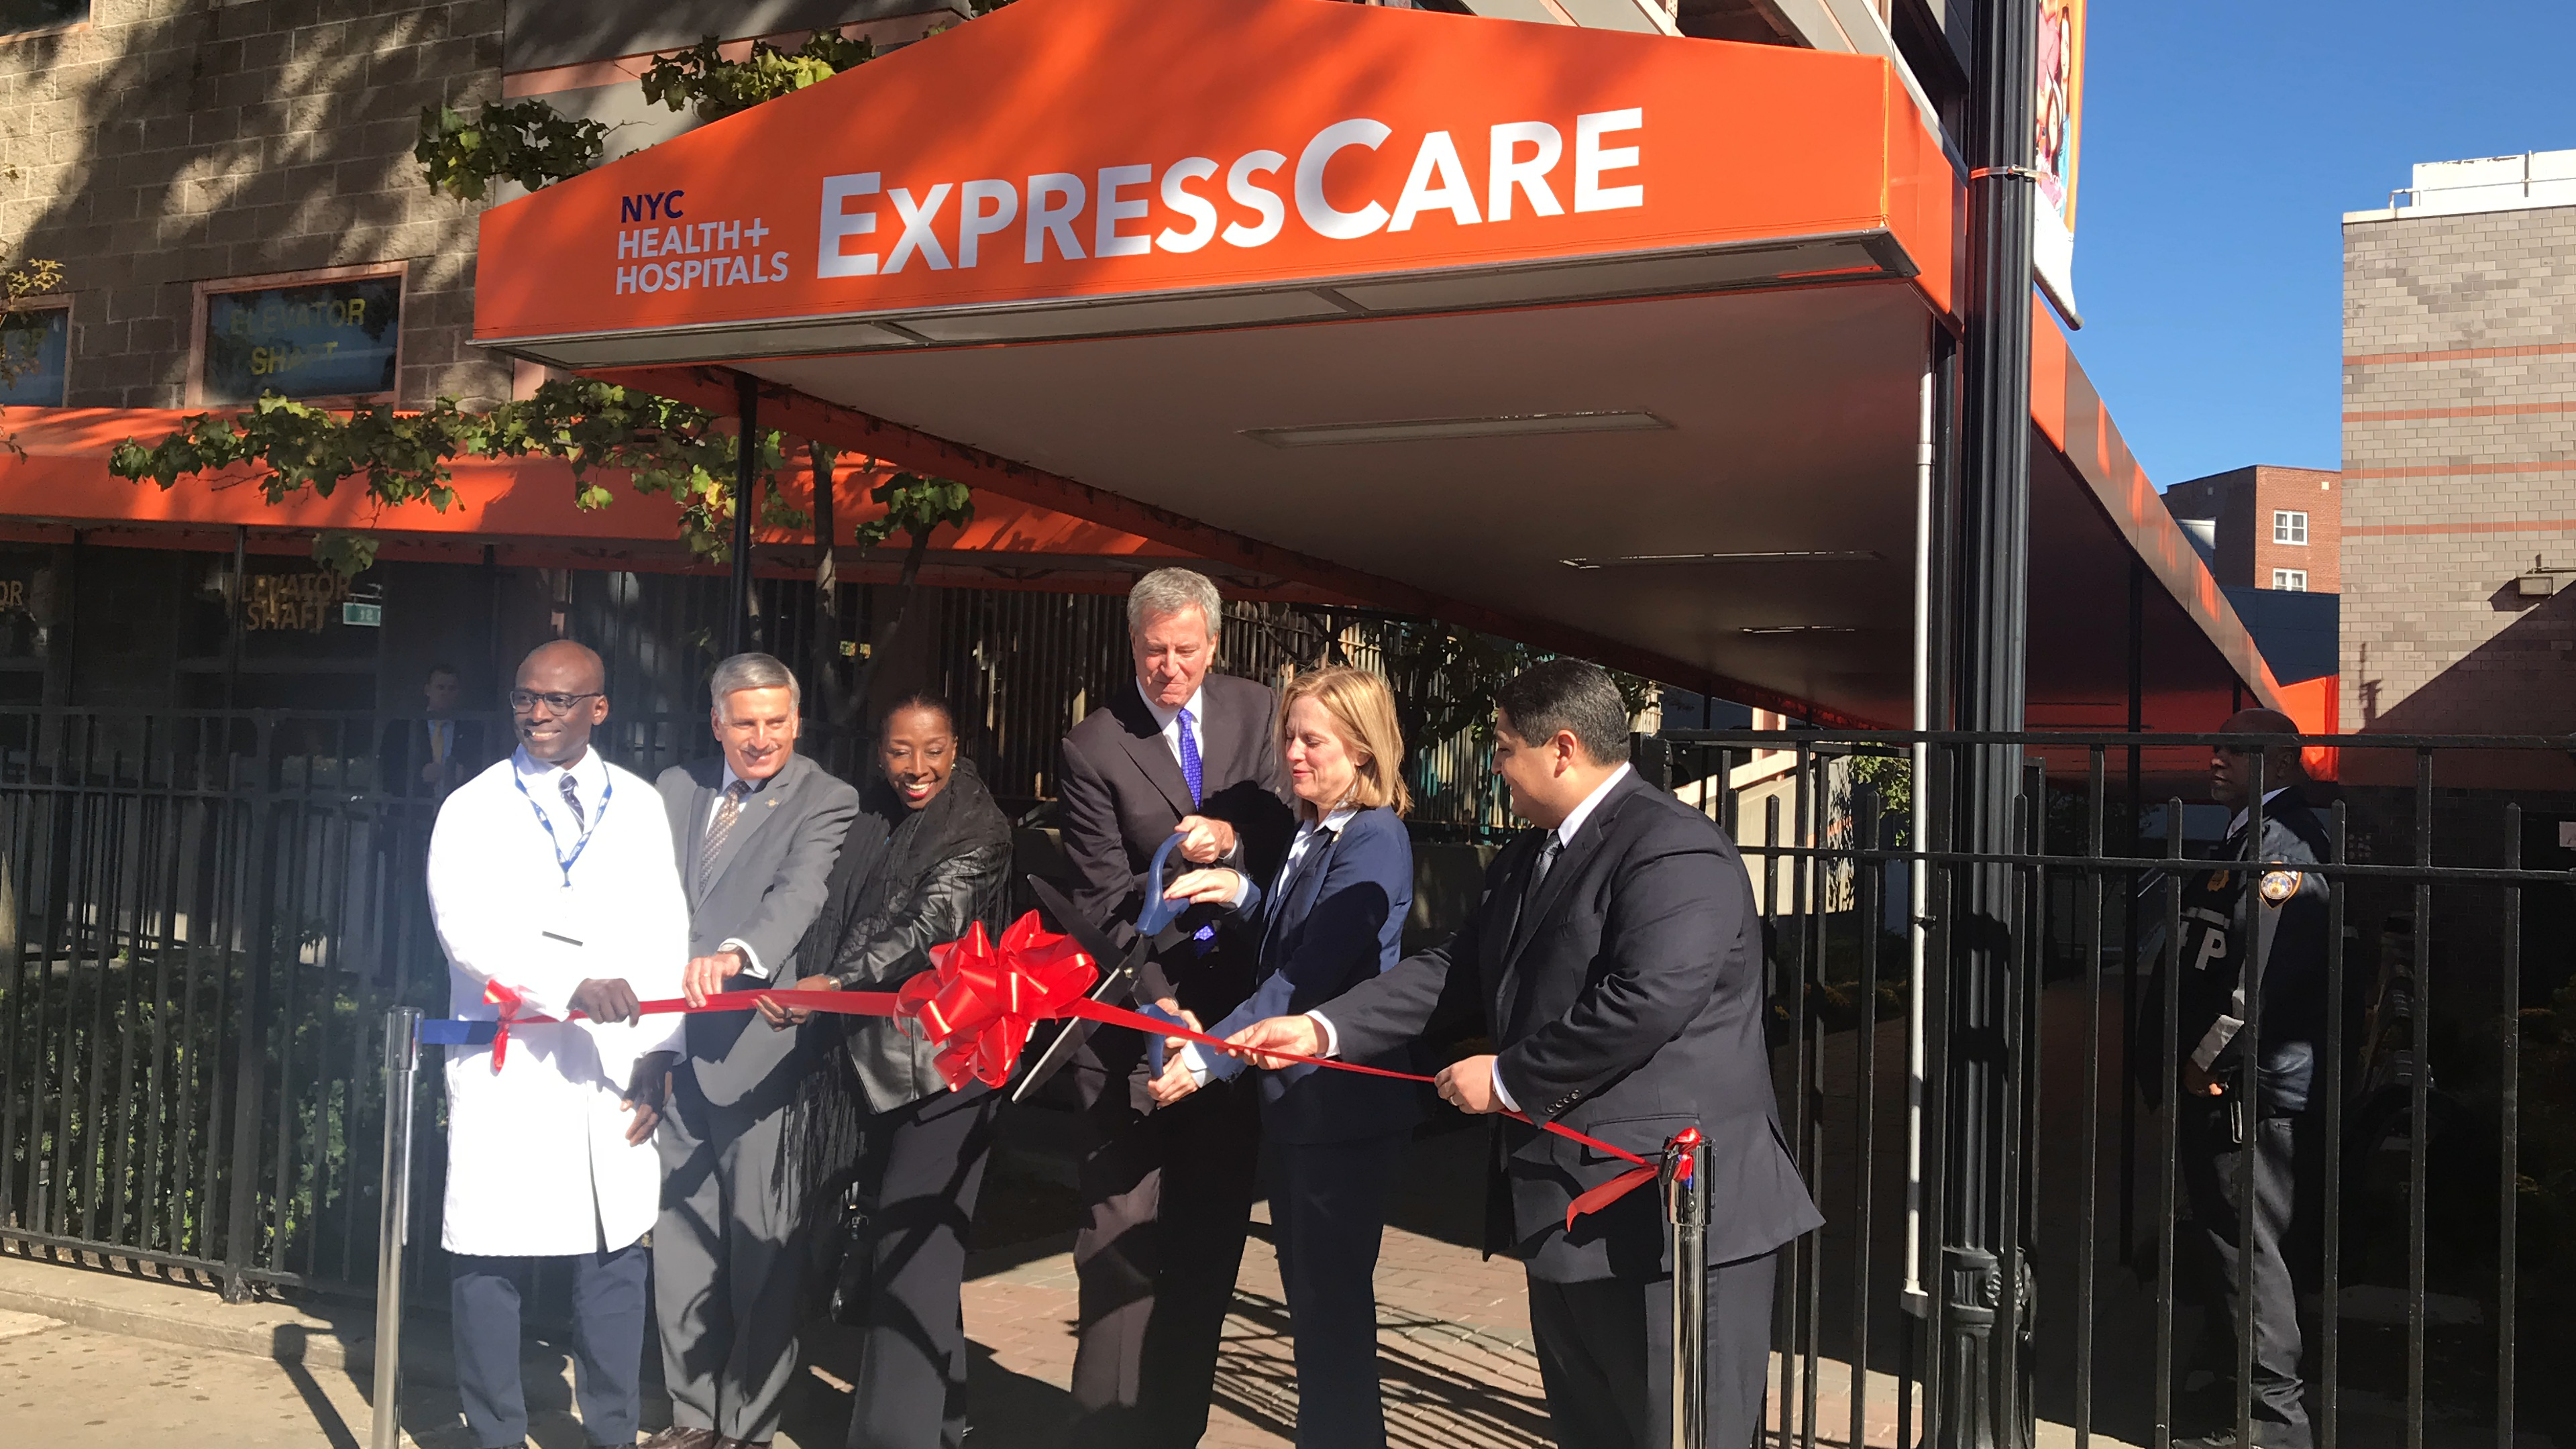 De Blasio Administration Opens First NYC Health + Hospitals